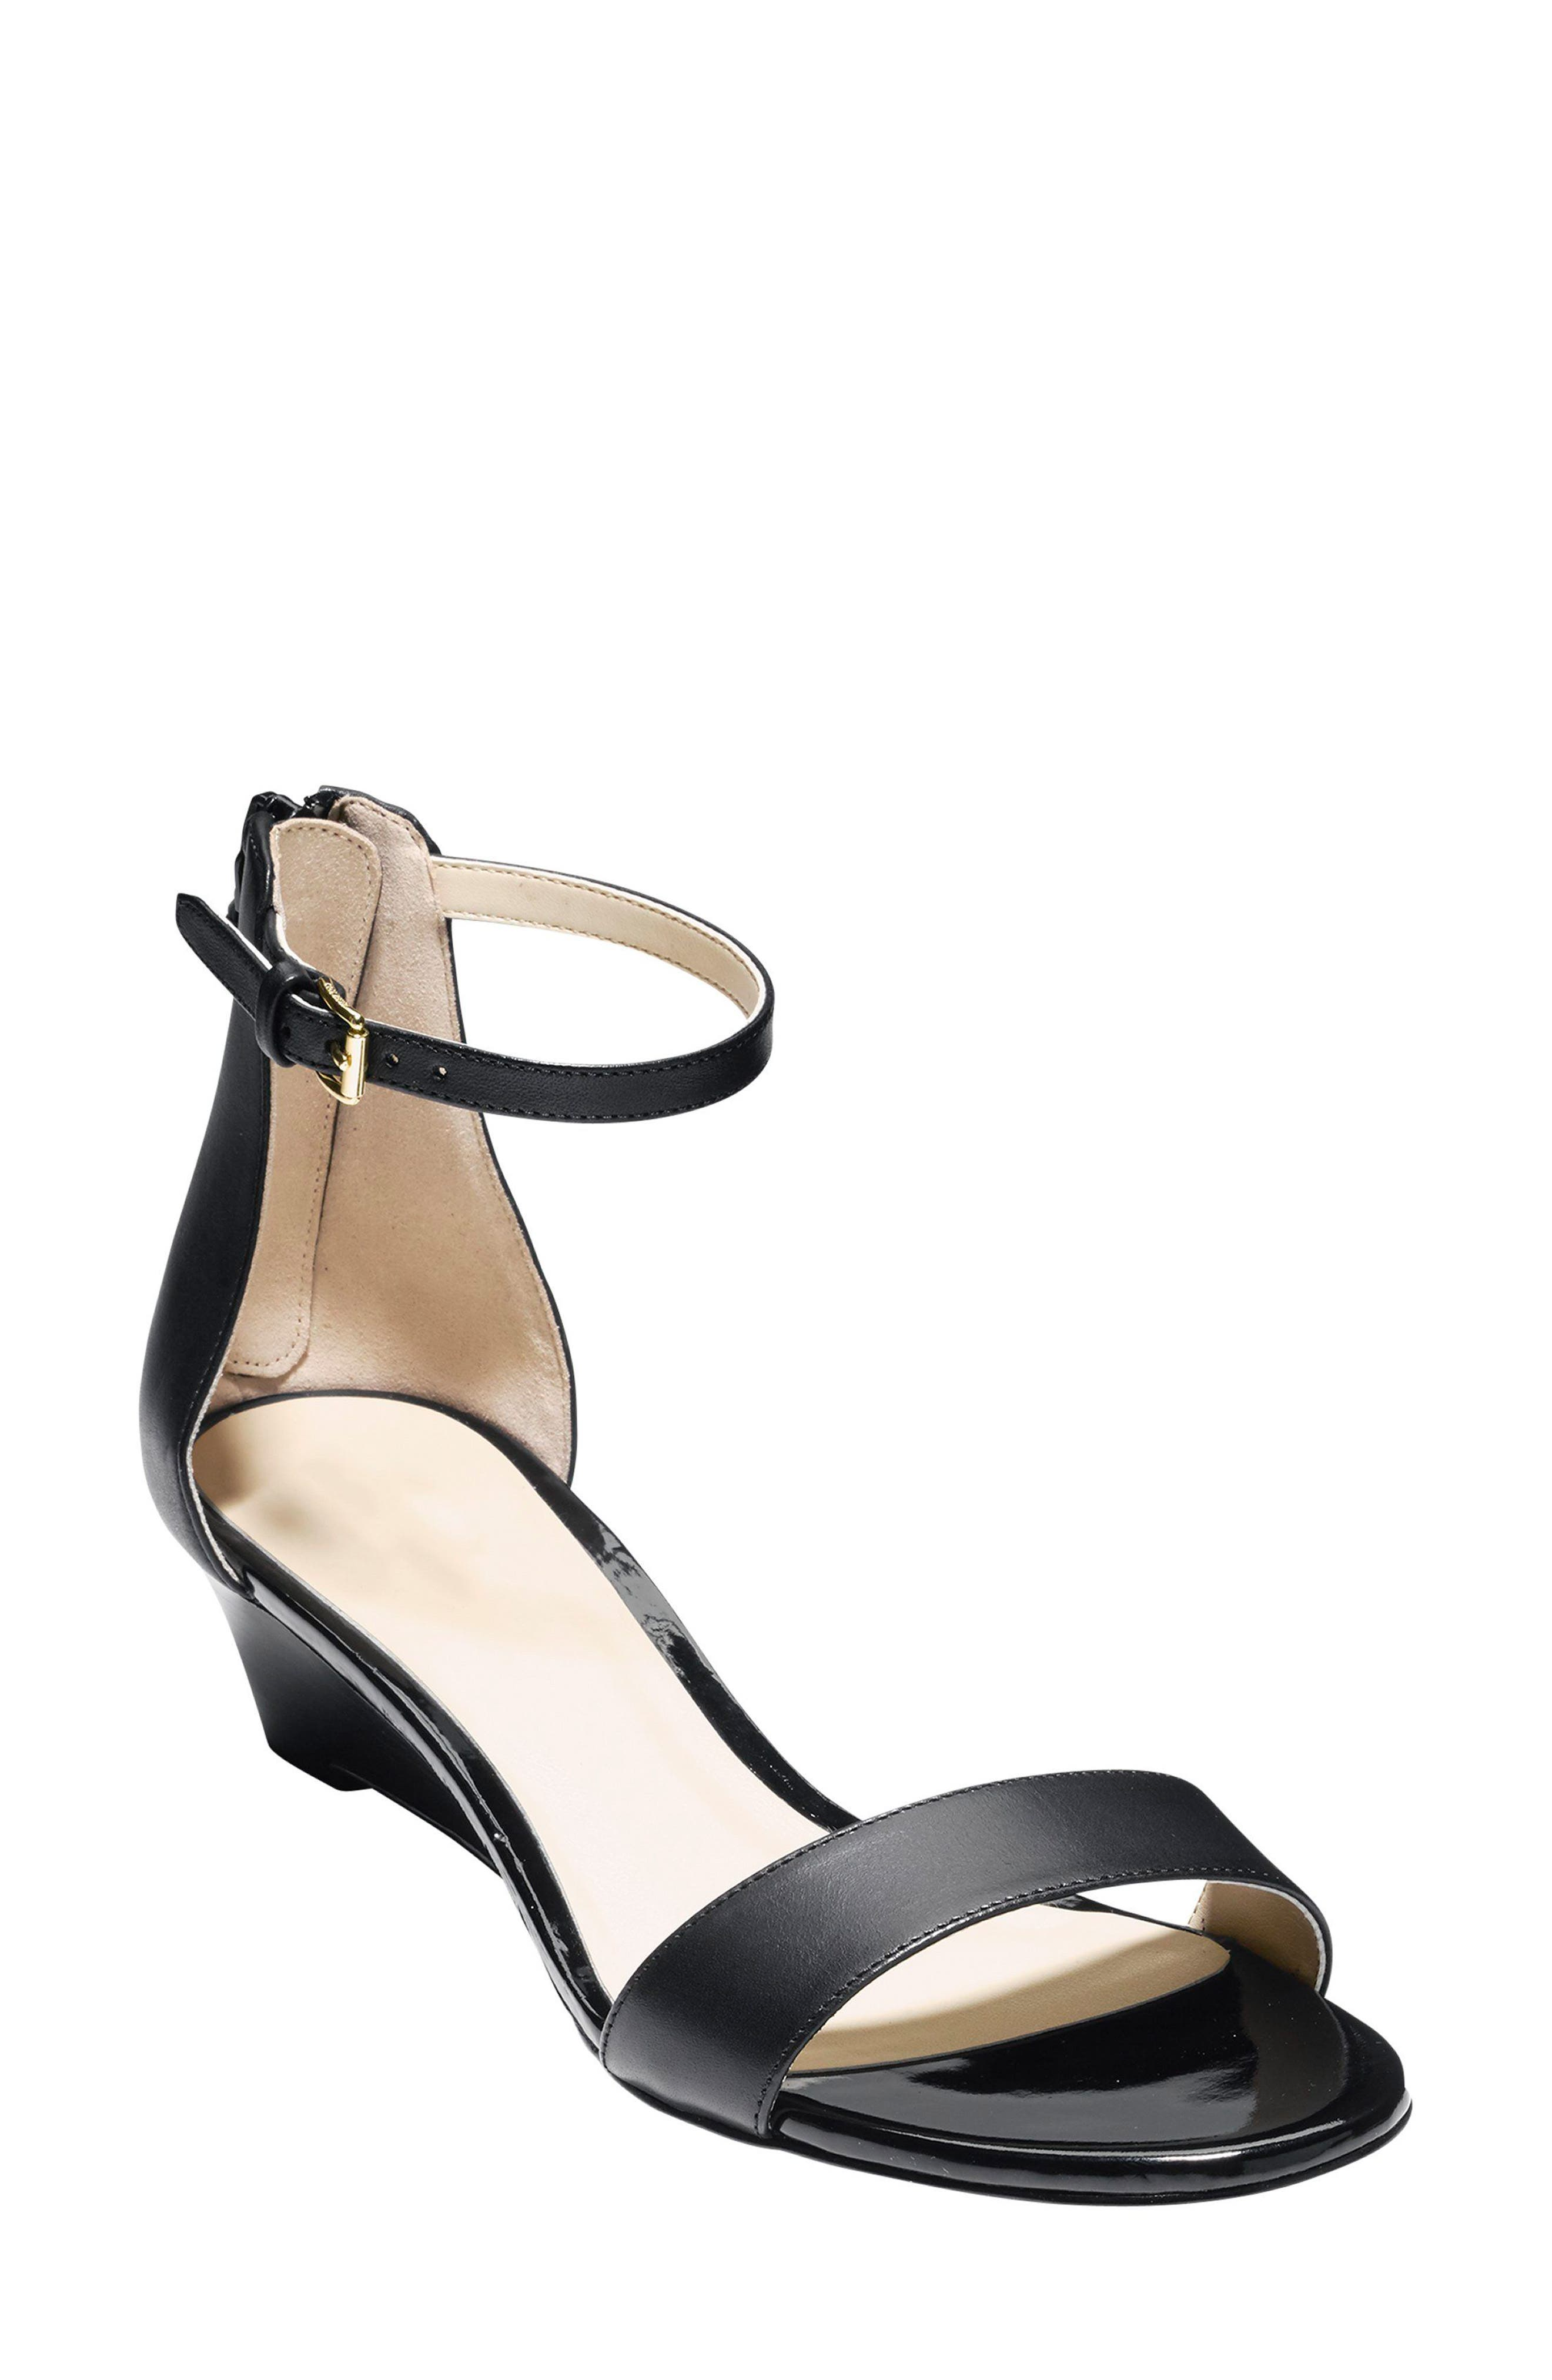 COLE HAAN Adderly Sandal, Main, color, 001